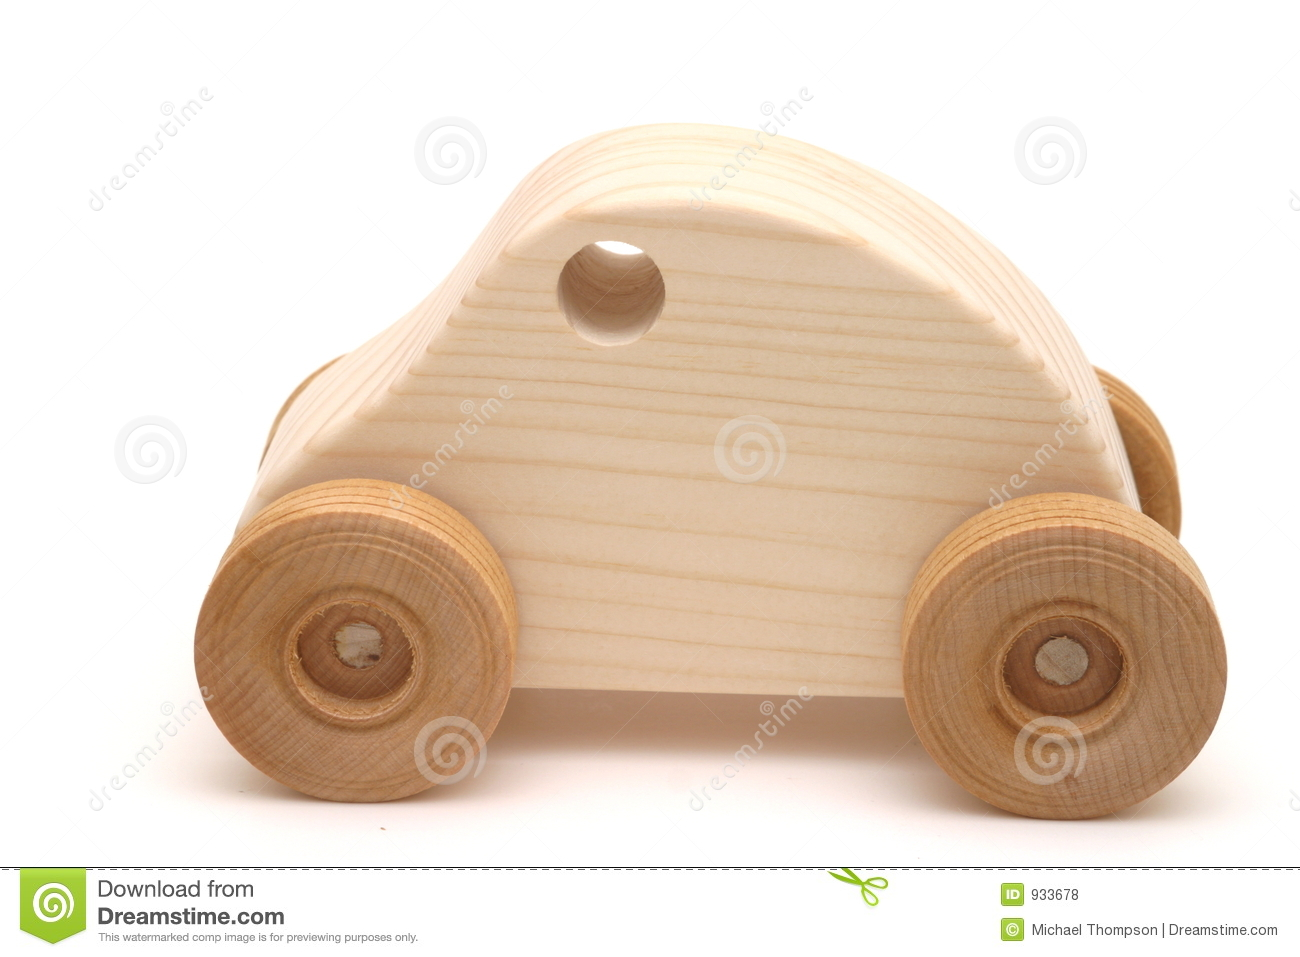 Wooden Toy Car Plans Wooden toy car royalty free